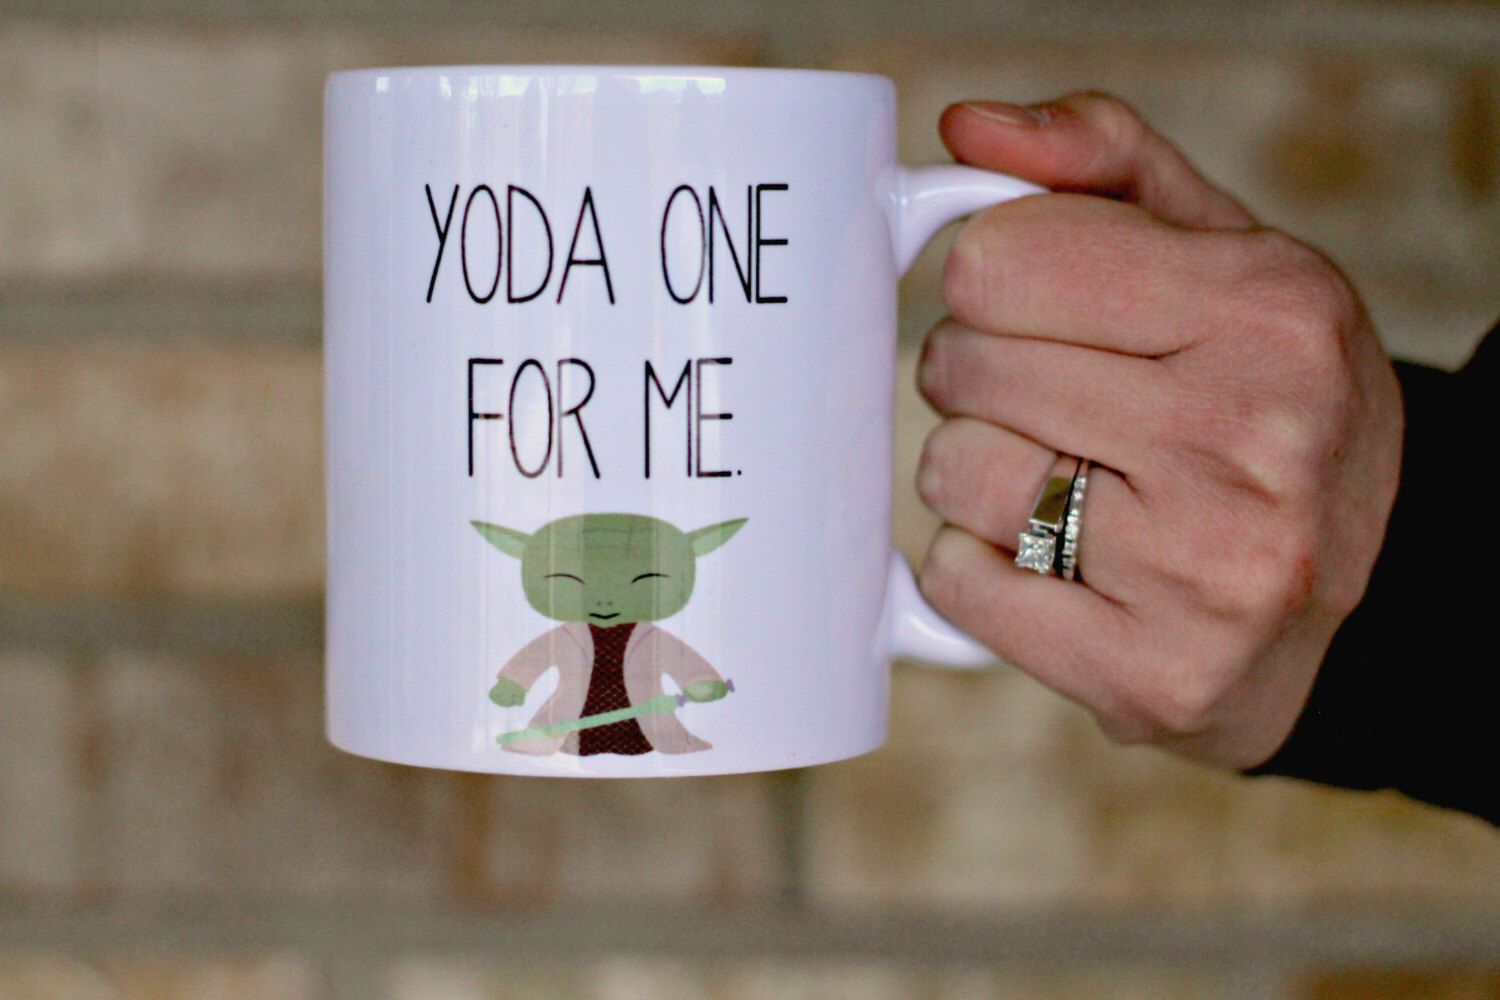 Yoda Mug, Yoda One For Me Mug, Gift for husband, Gift for boyfriend, Gift for her, Star Wars Mug, Funny Coffee Mug by ShopFourArrows on Etsy https://www.etsy.com/listing/263671879/yoda-mug-yoda-one-for-me-mug-gift-for